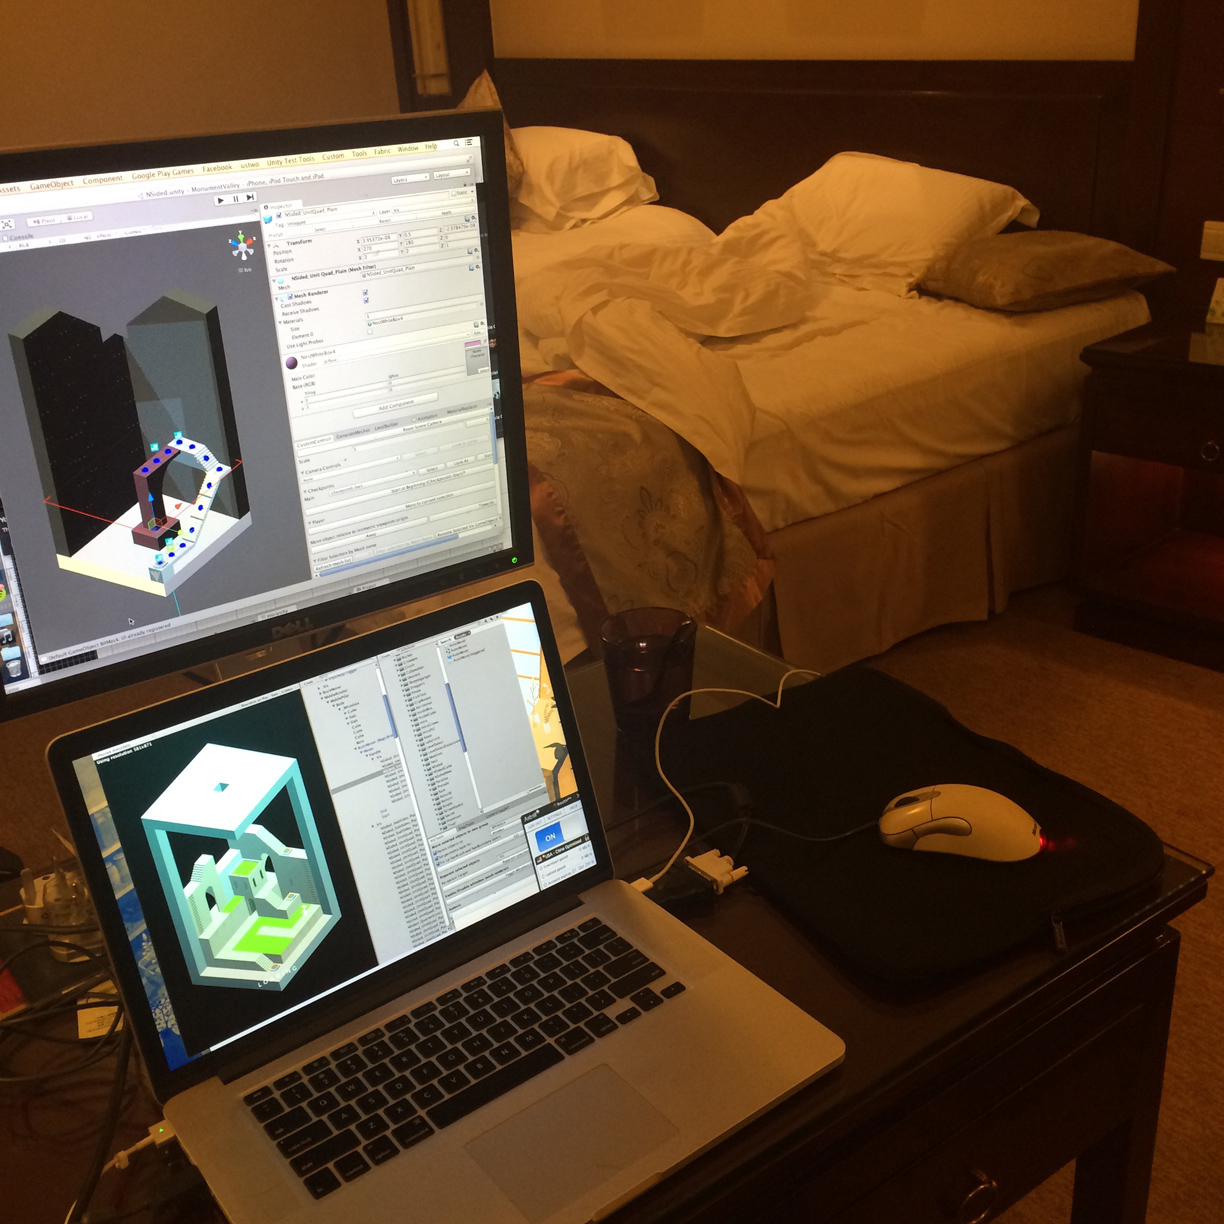 Doing an art pass on The Oubliette from a hotel room in Shanghai with a borrowed monitor